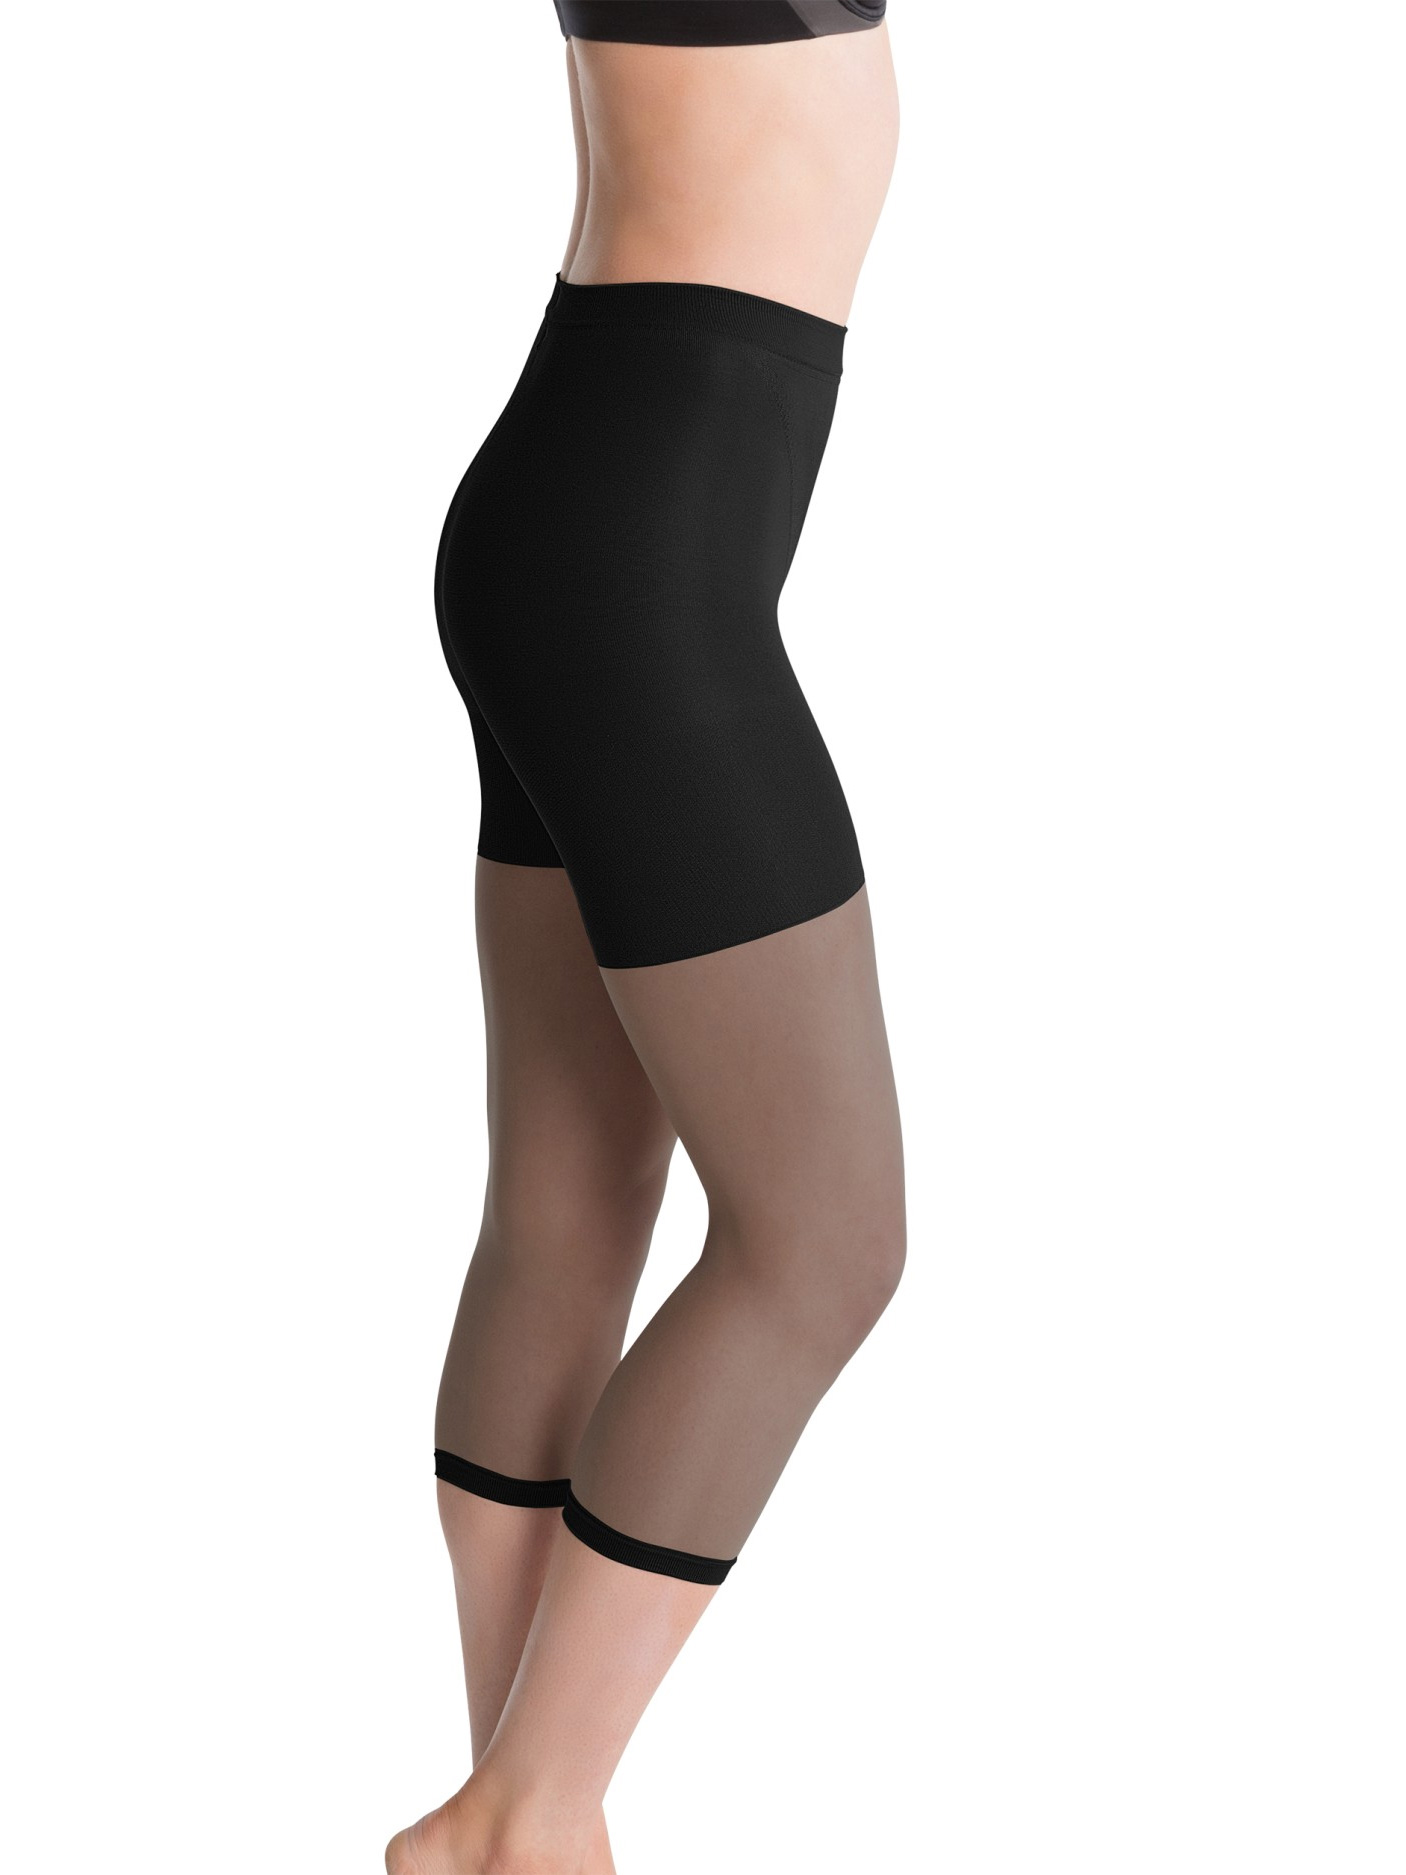 SPANX In-Power Line Super High Footless Shaper - Black - A